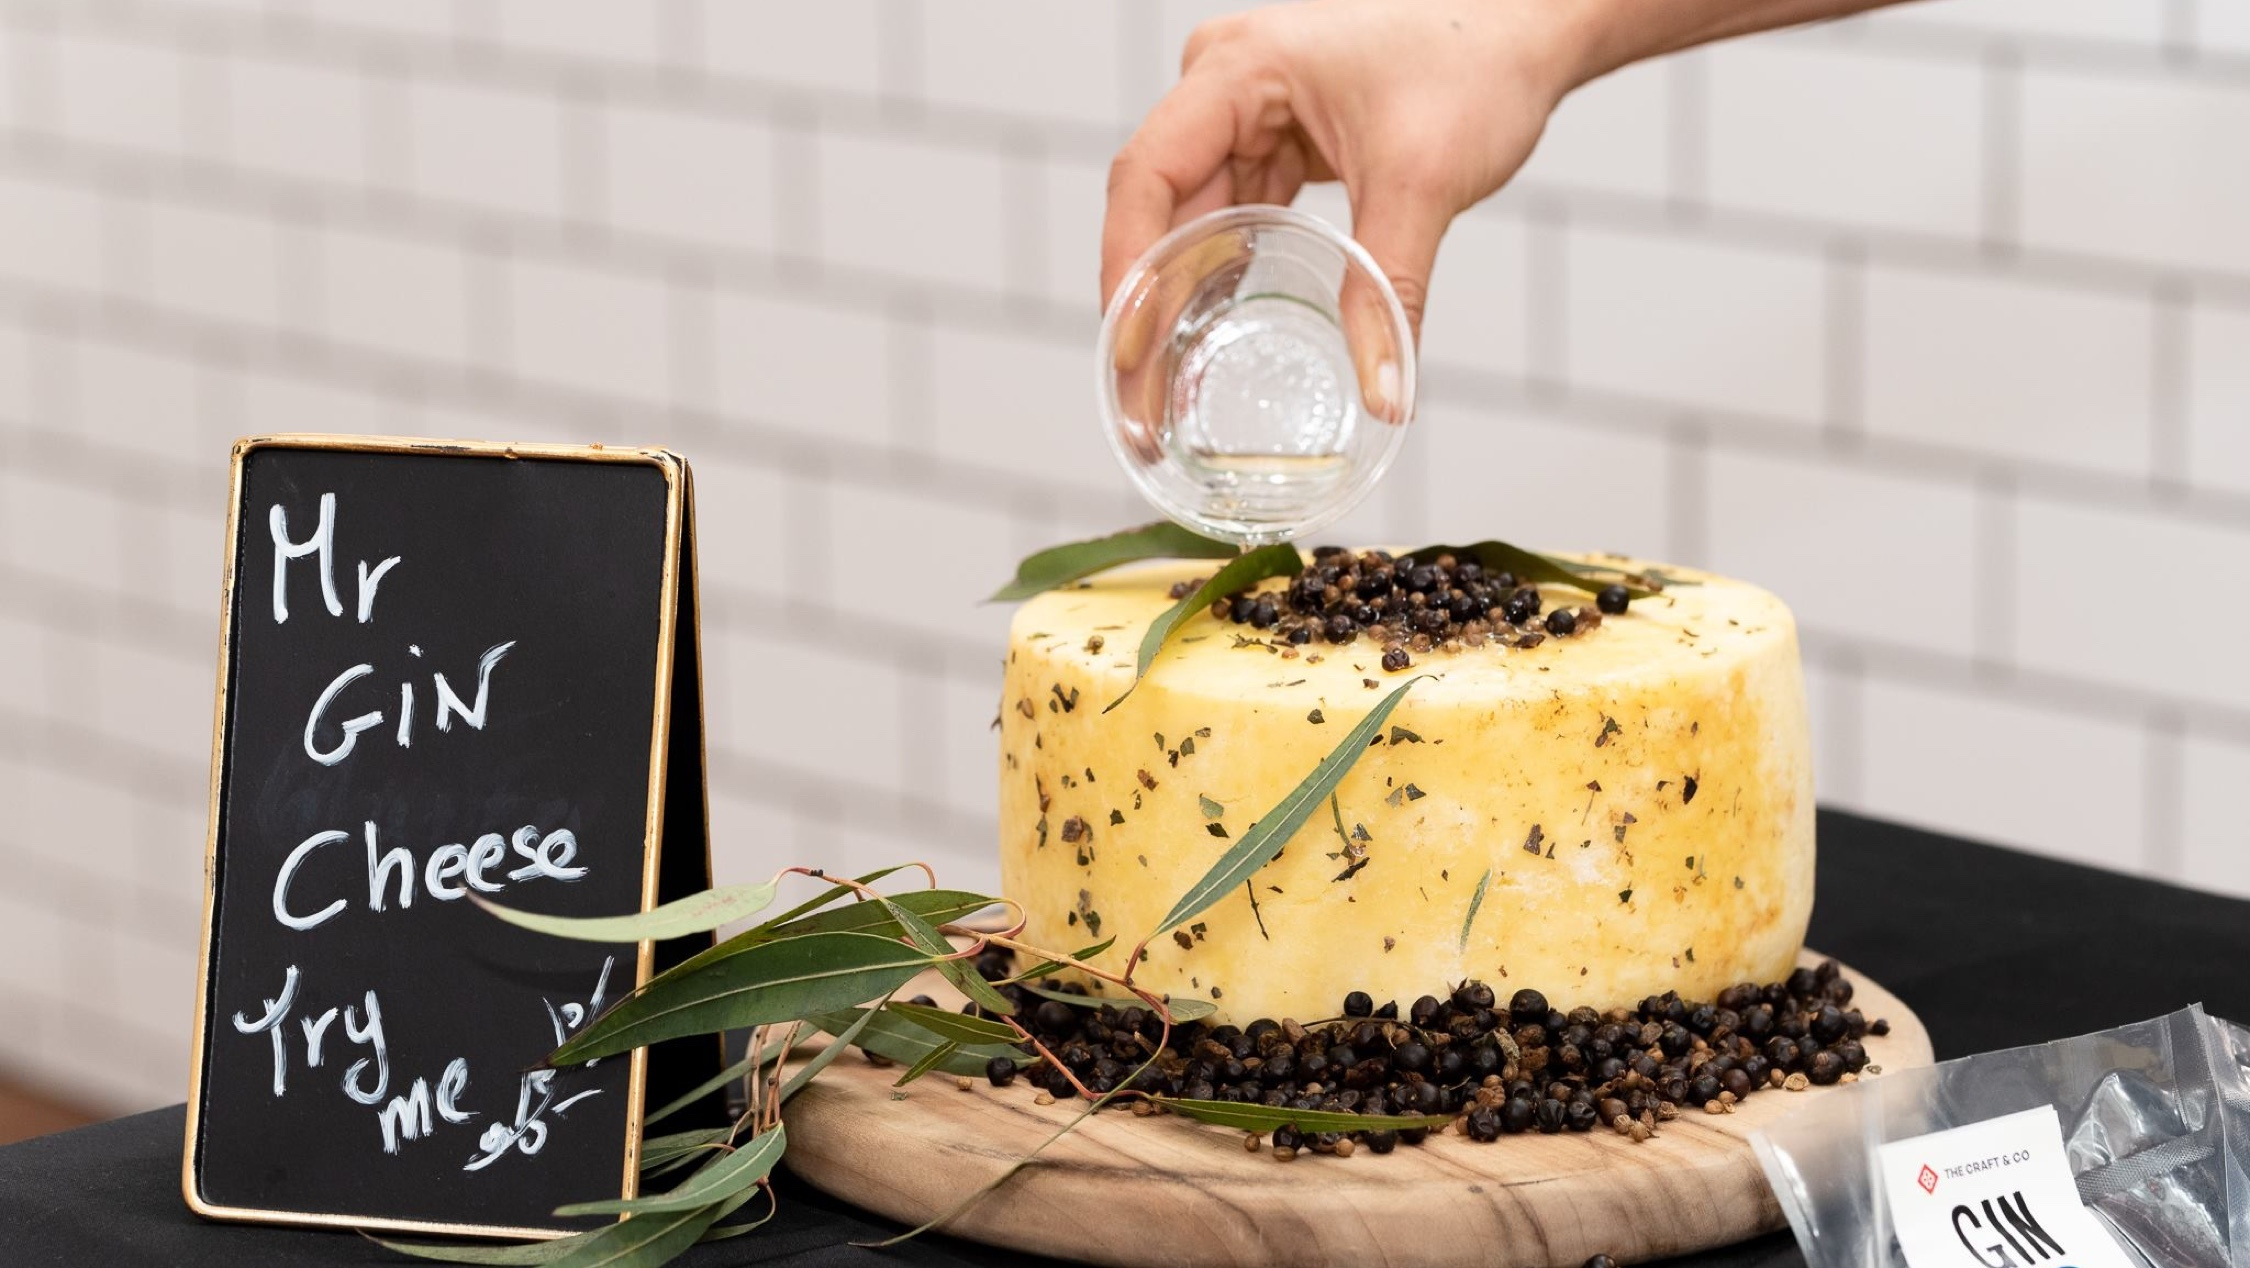 World Gin Day Pop-Up Market Stall | The Craft & Co | Things to do in Melbourne